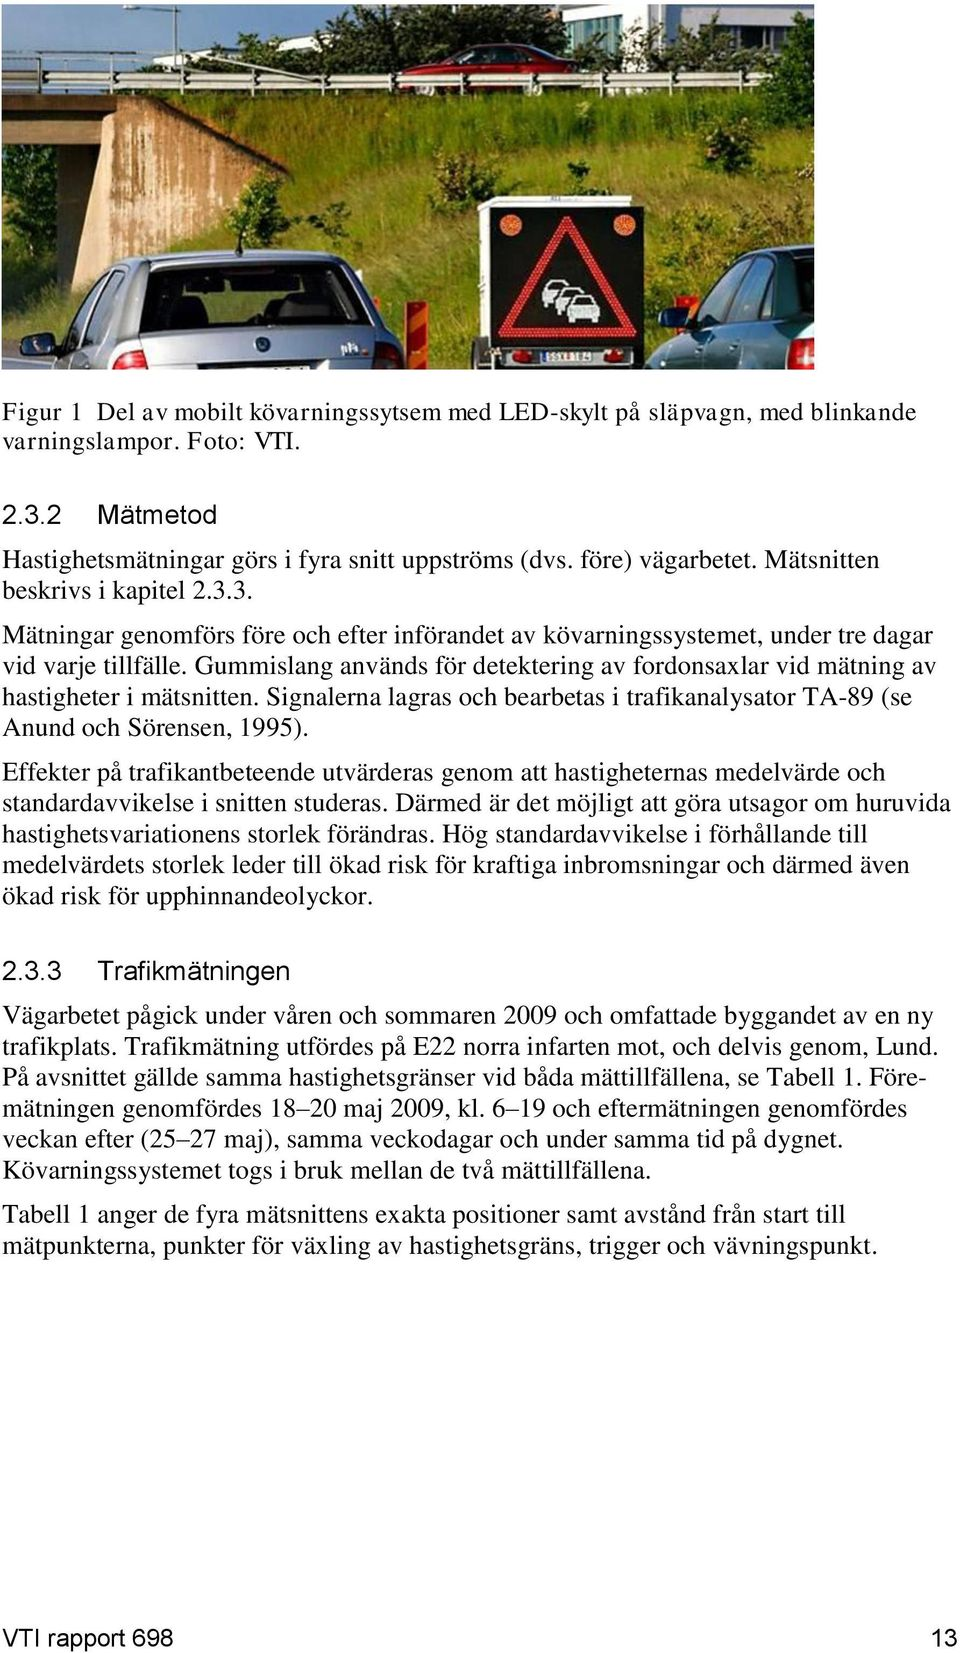 lätt en ingen dating citat